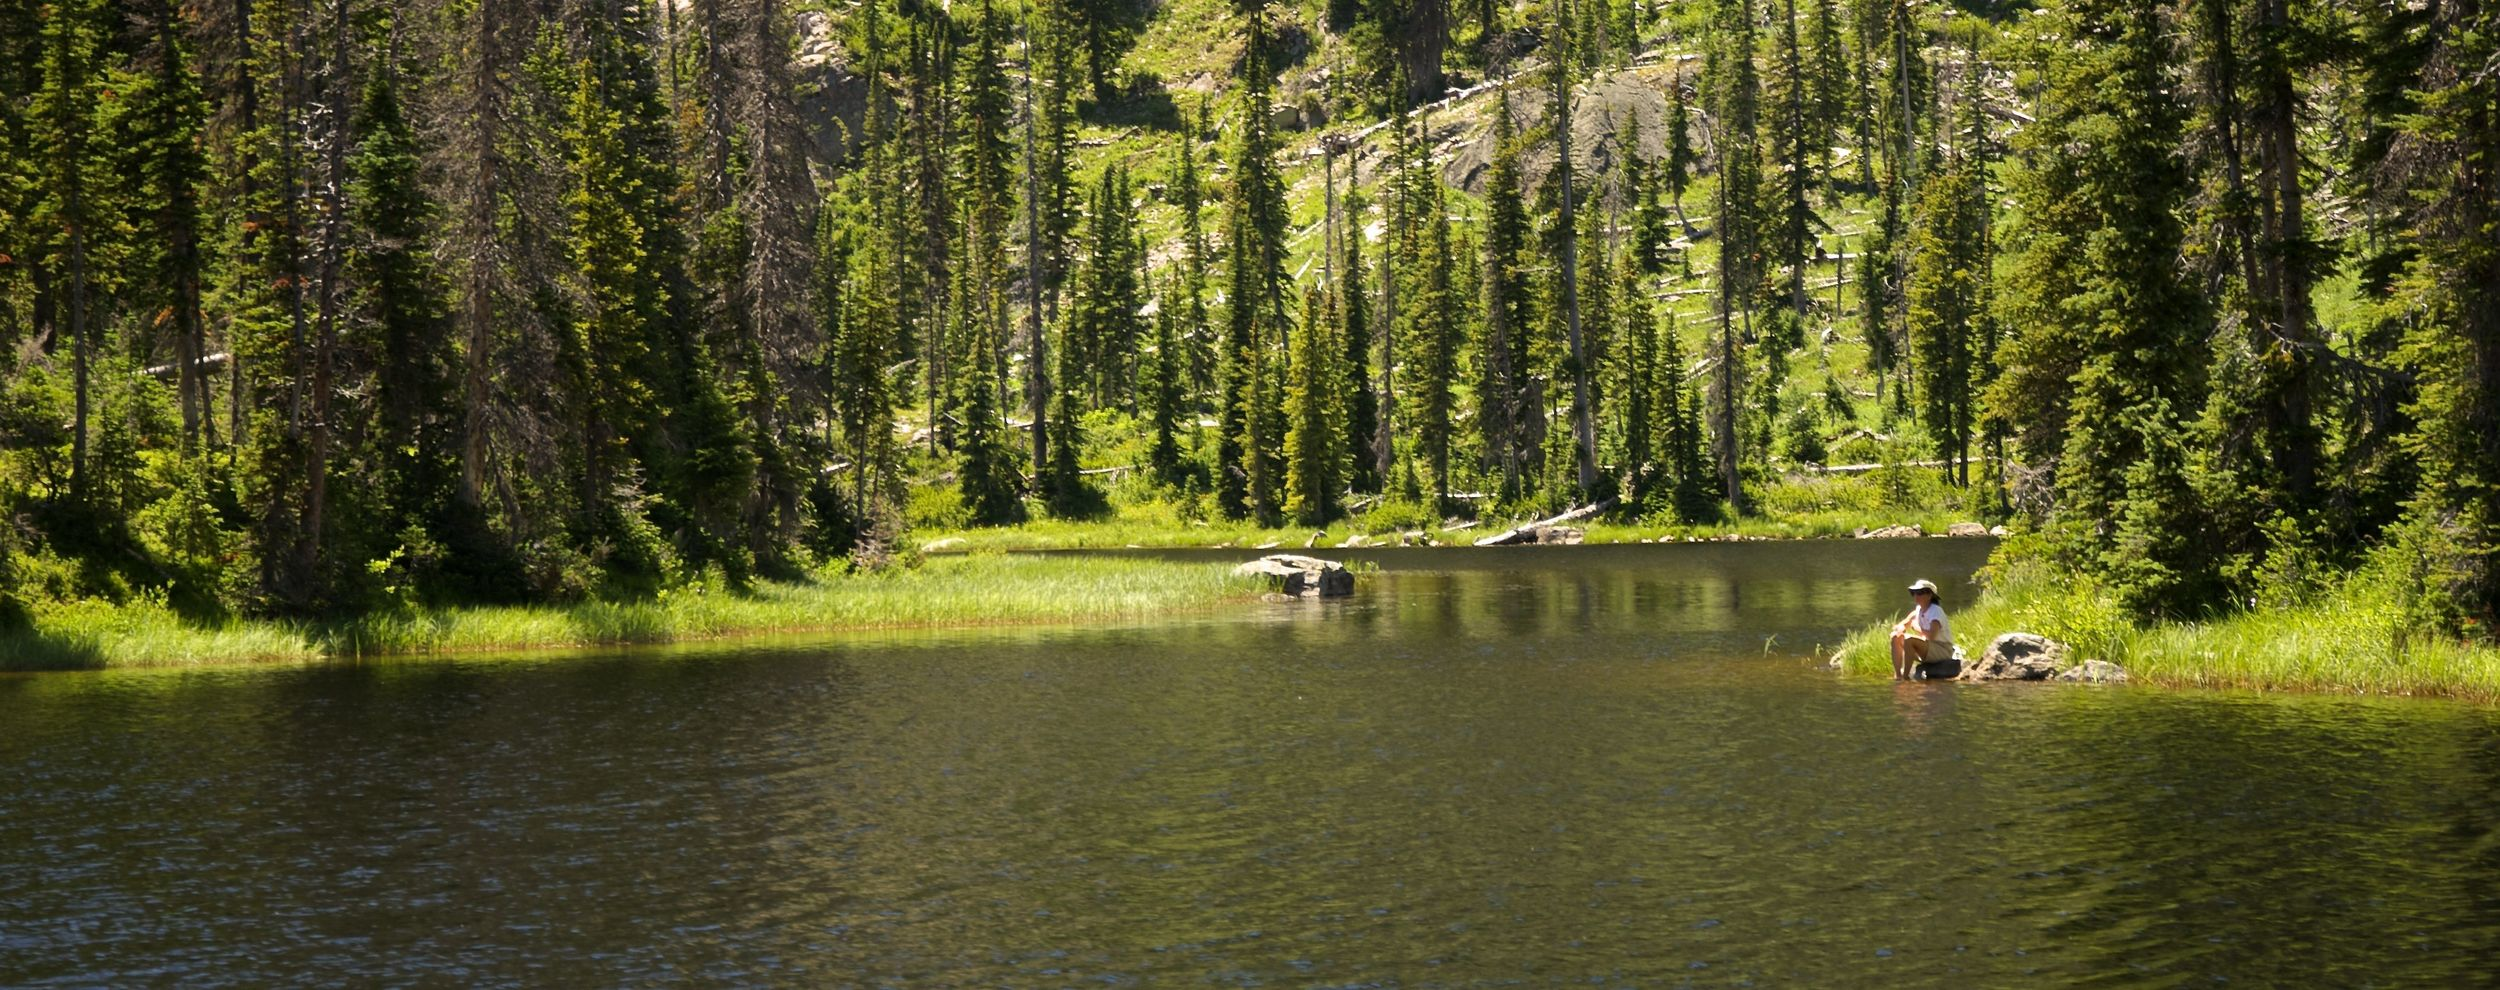 Three Island Lake, Steamboat Springs, Colorado hiking trail